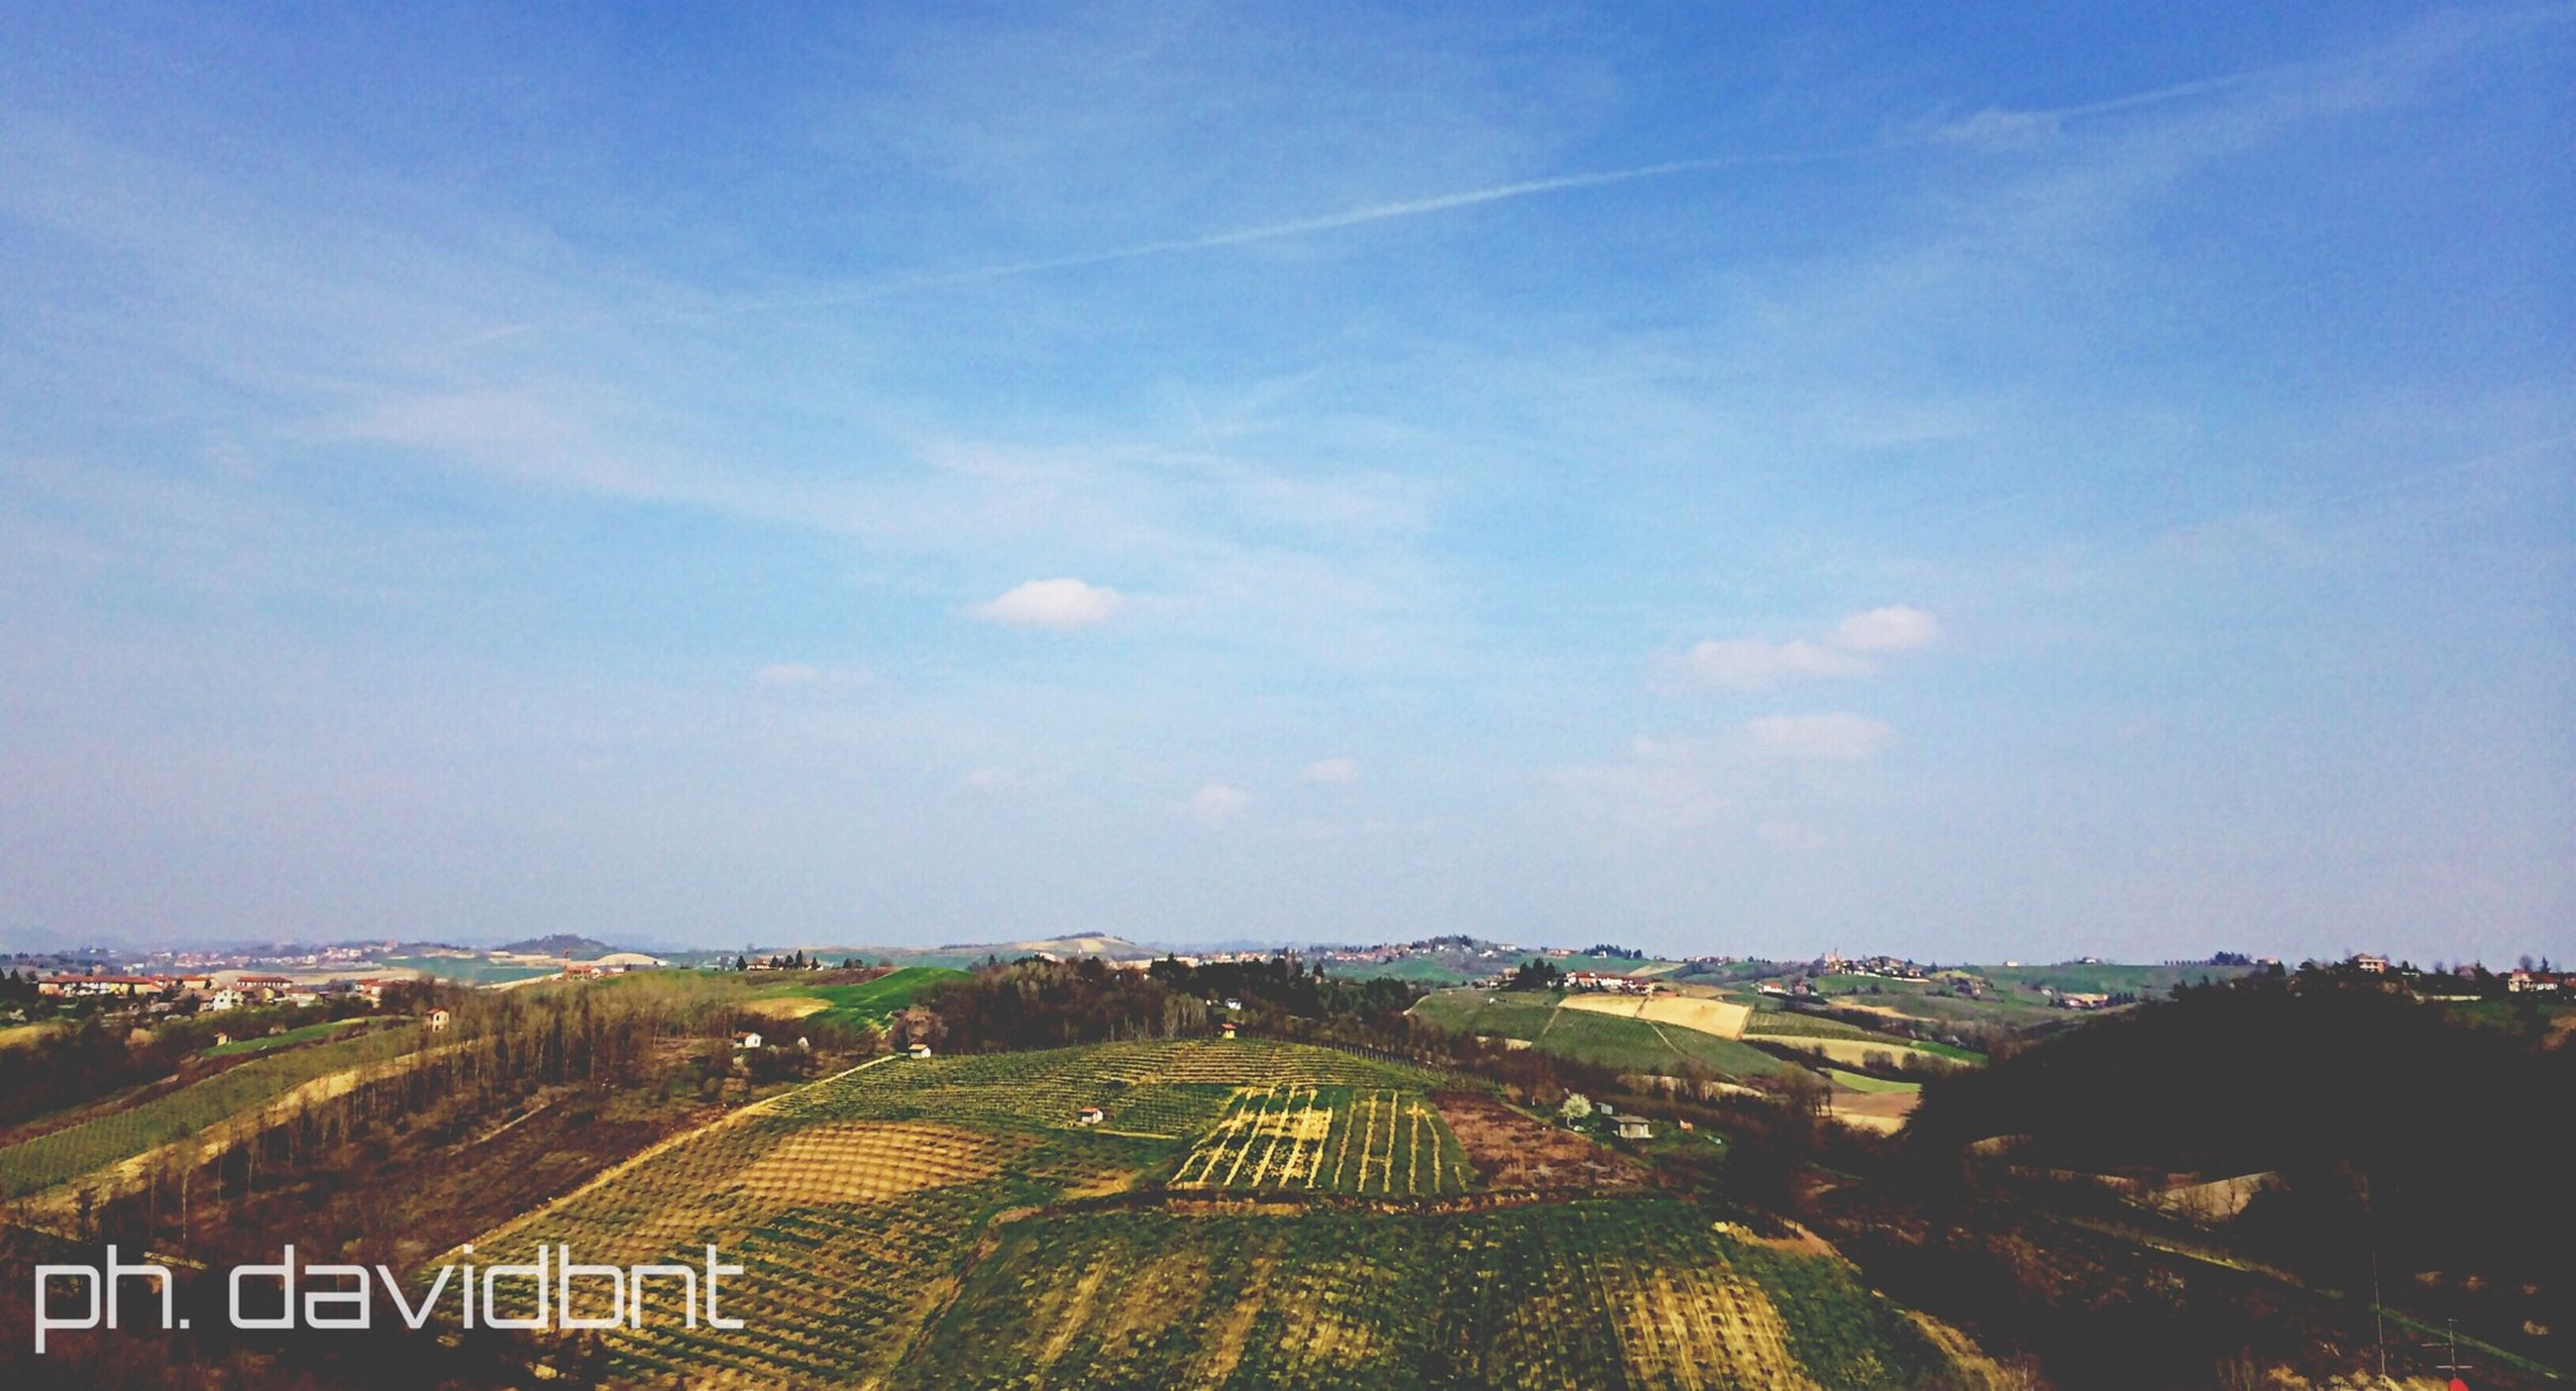 sky, agriculture, landscape, rural scene, field, high angle view, blue, tree, built structure, building exterior, cloud - sky, architecture, nature, growth, outdoors, tranquility, farm, beauty in nature, day, no people